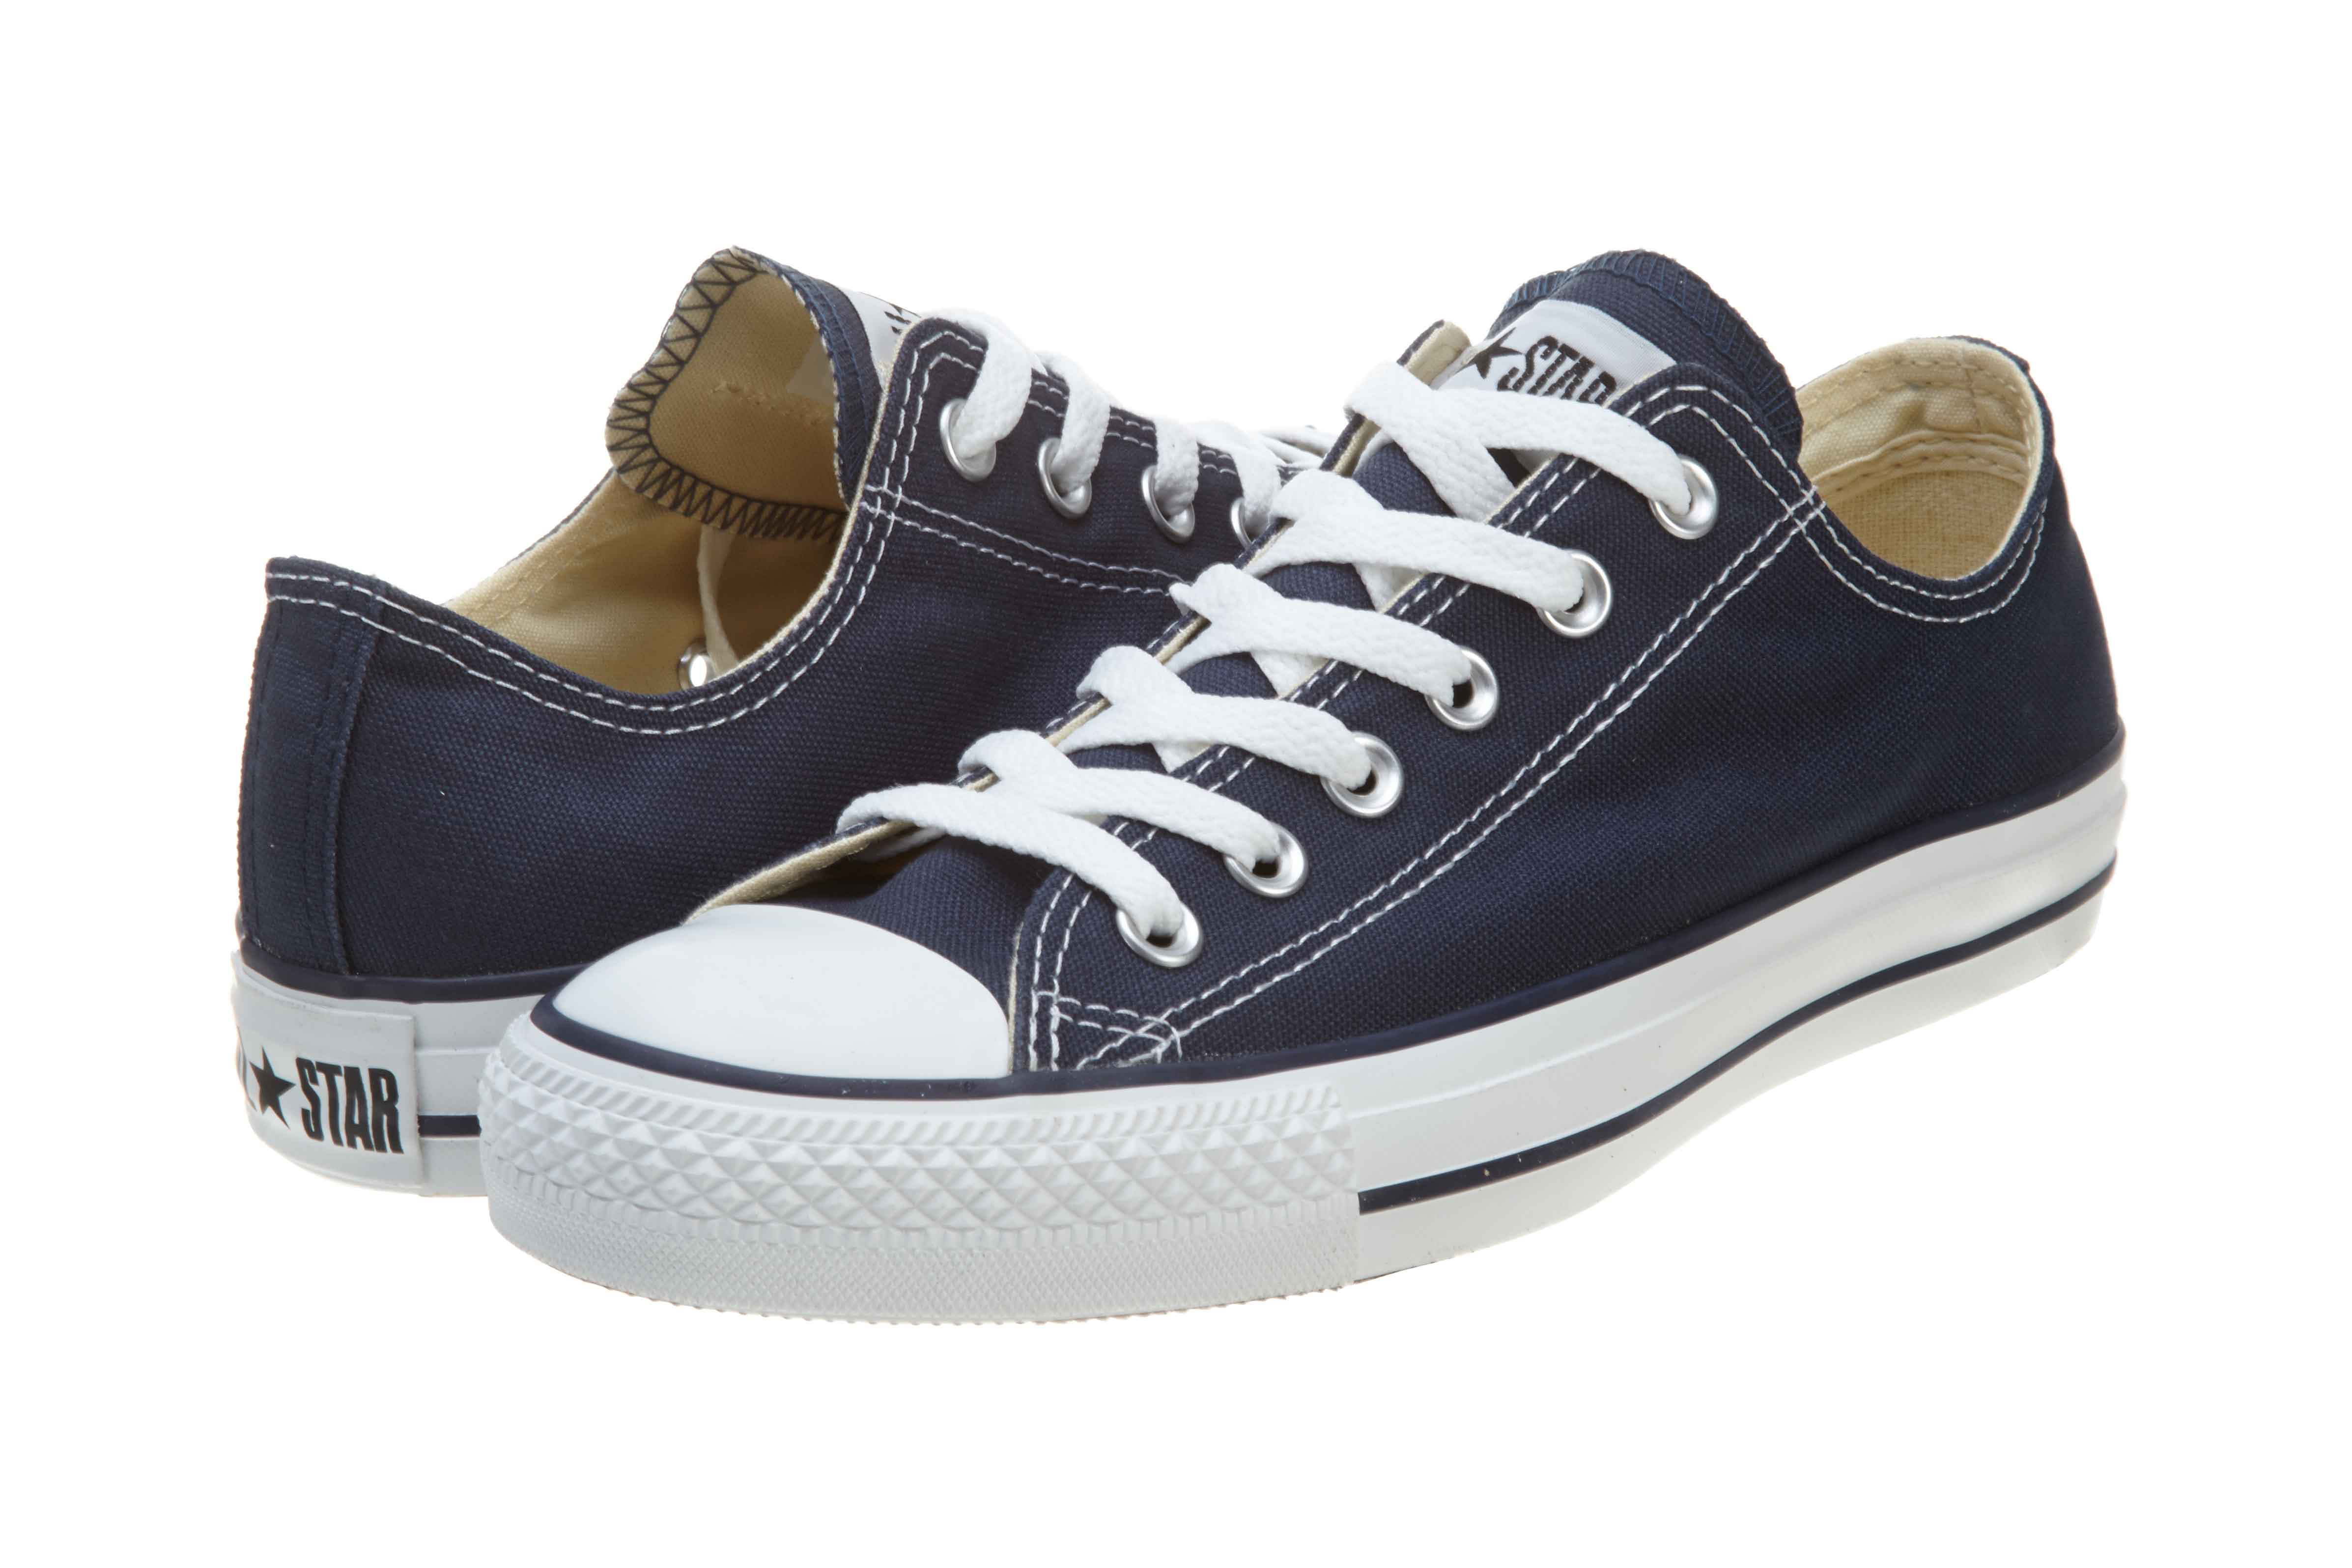 96eaa8784bf9 Converse Chuck Taylor All Star Ox Navy Unisex Style M9697